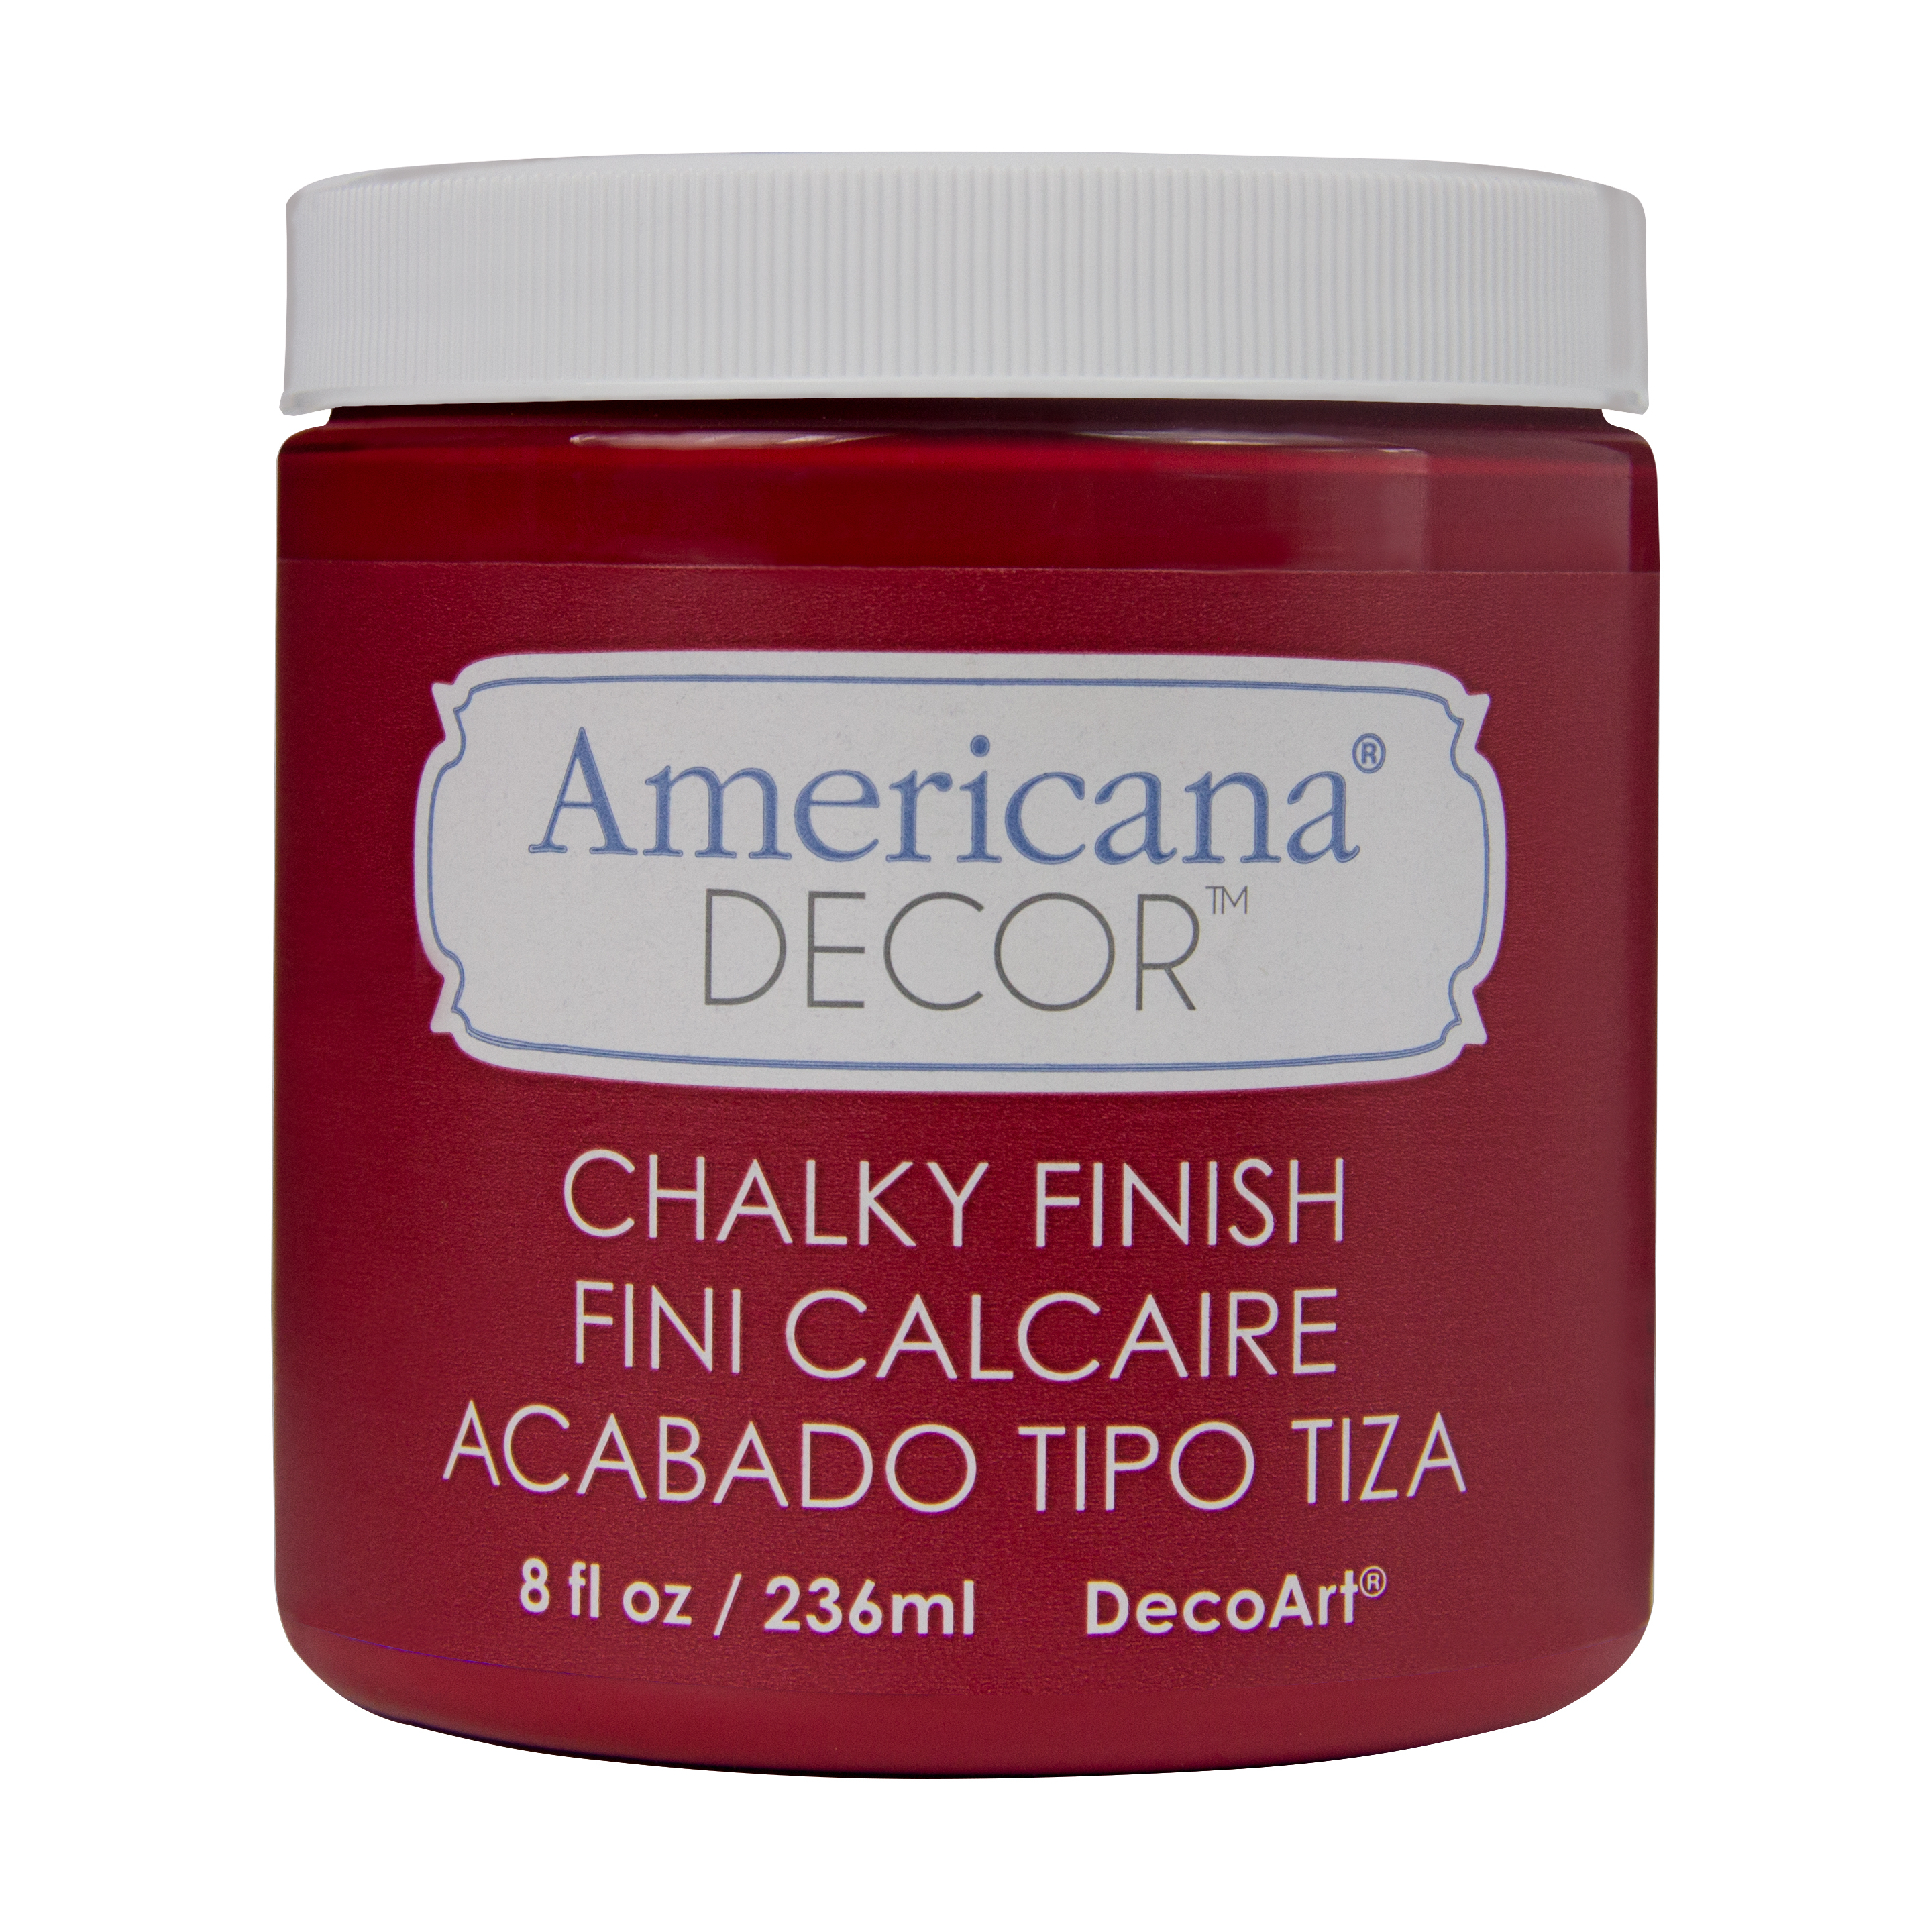 ROMANCE CHALKY FINISH 236ml AMERICANA DECOR